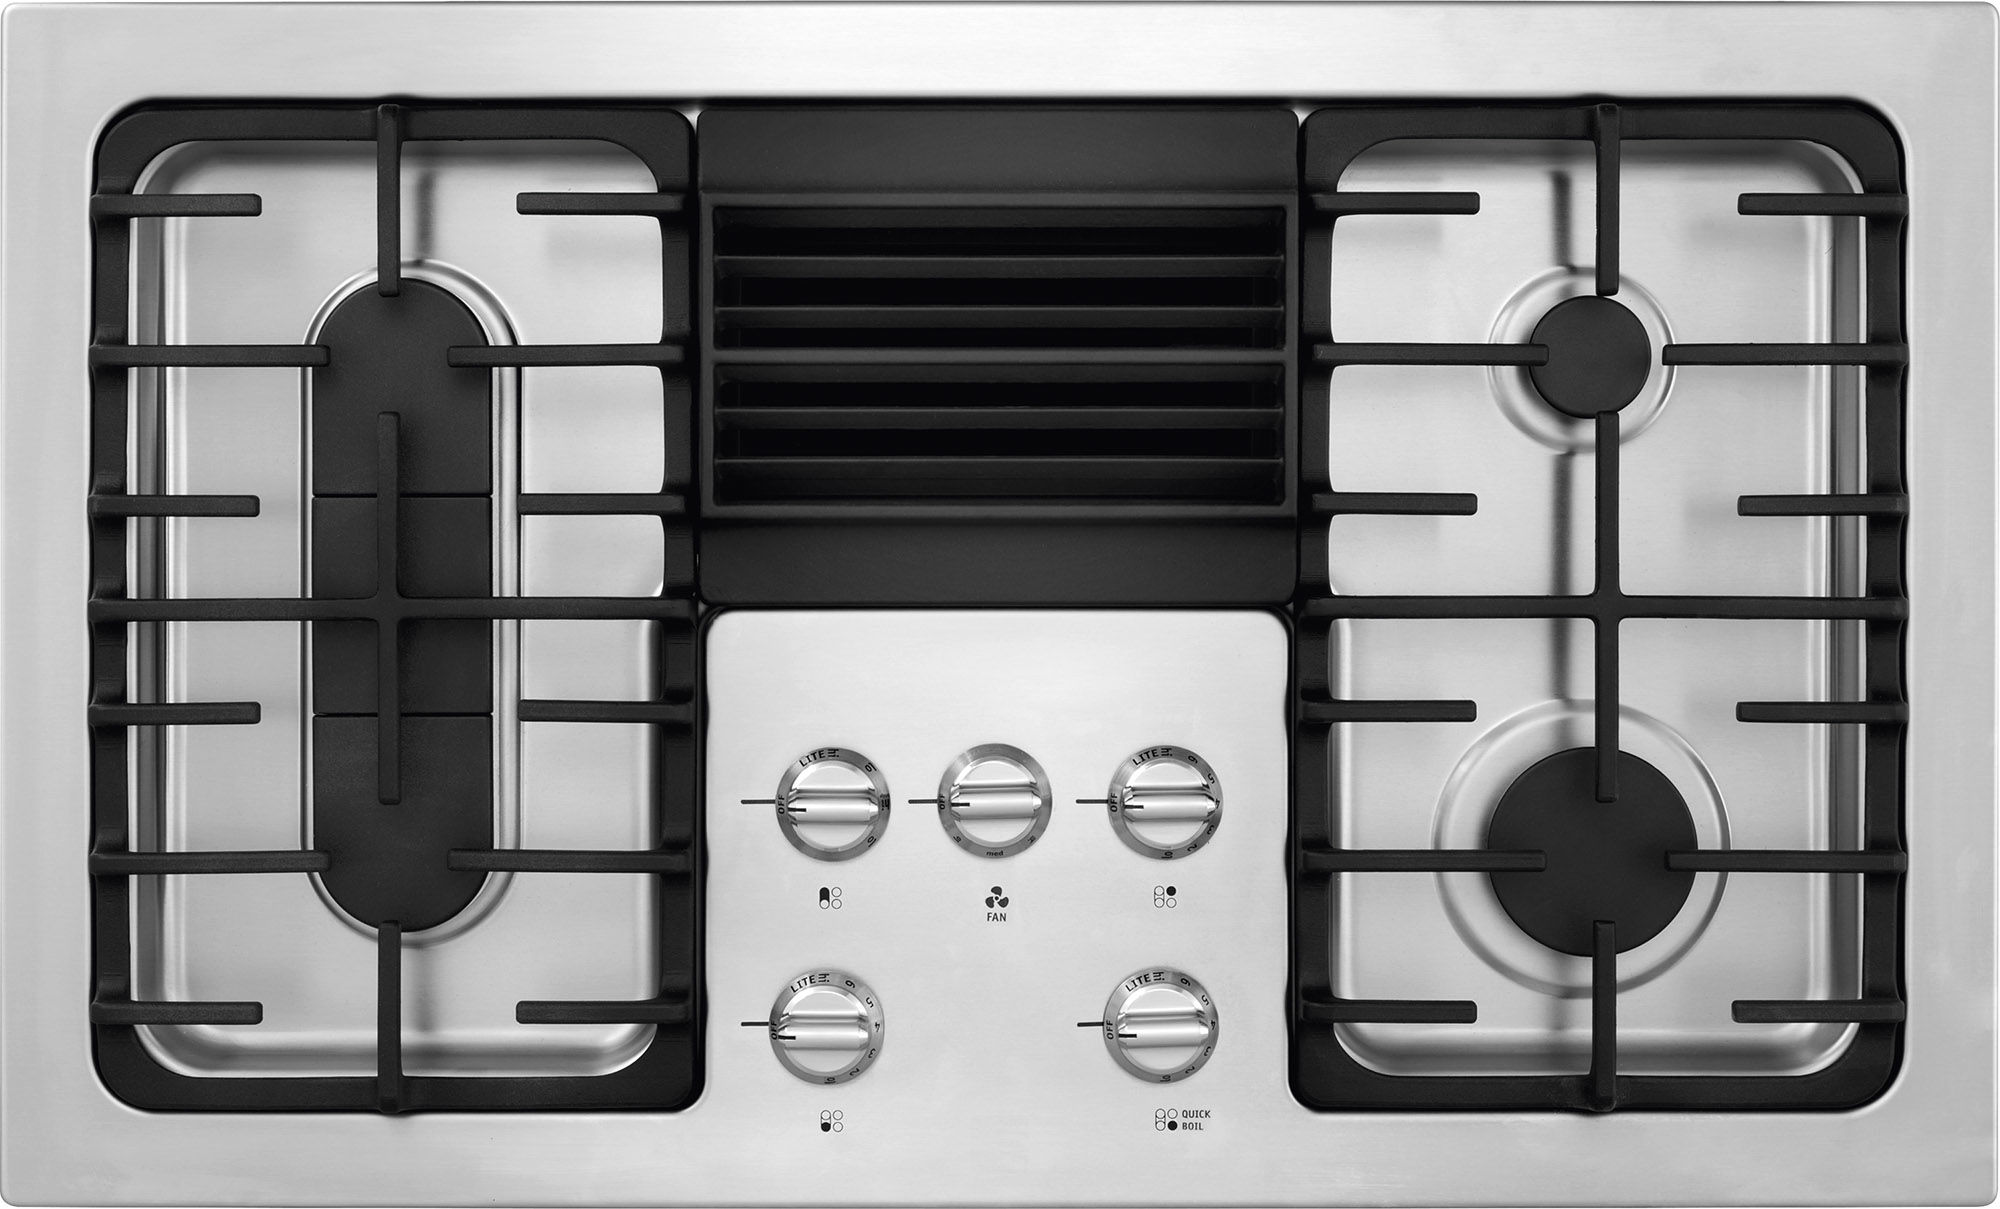 frigidaire rc36dg60ps stainless steel 36 inch 4 burner gas cooktop with builtin 500 cfm downdraft exhaust controls and continuous grates